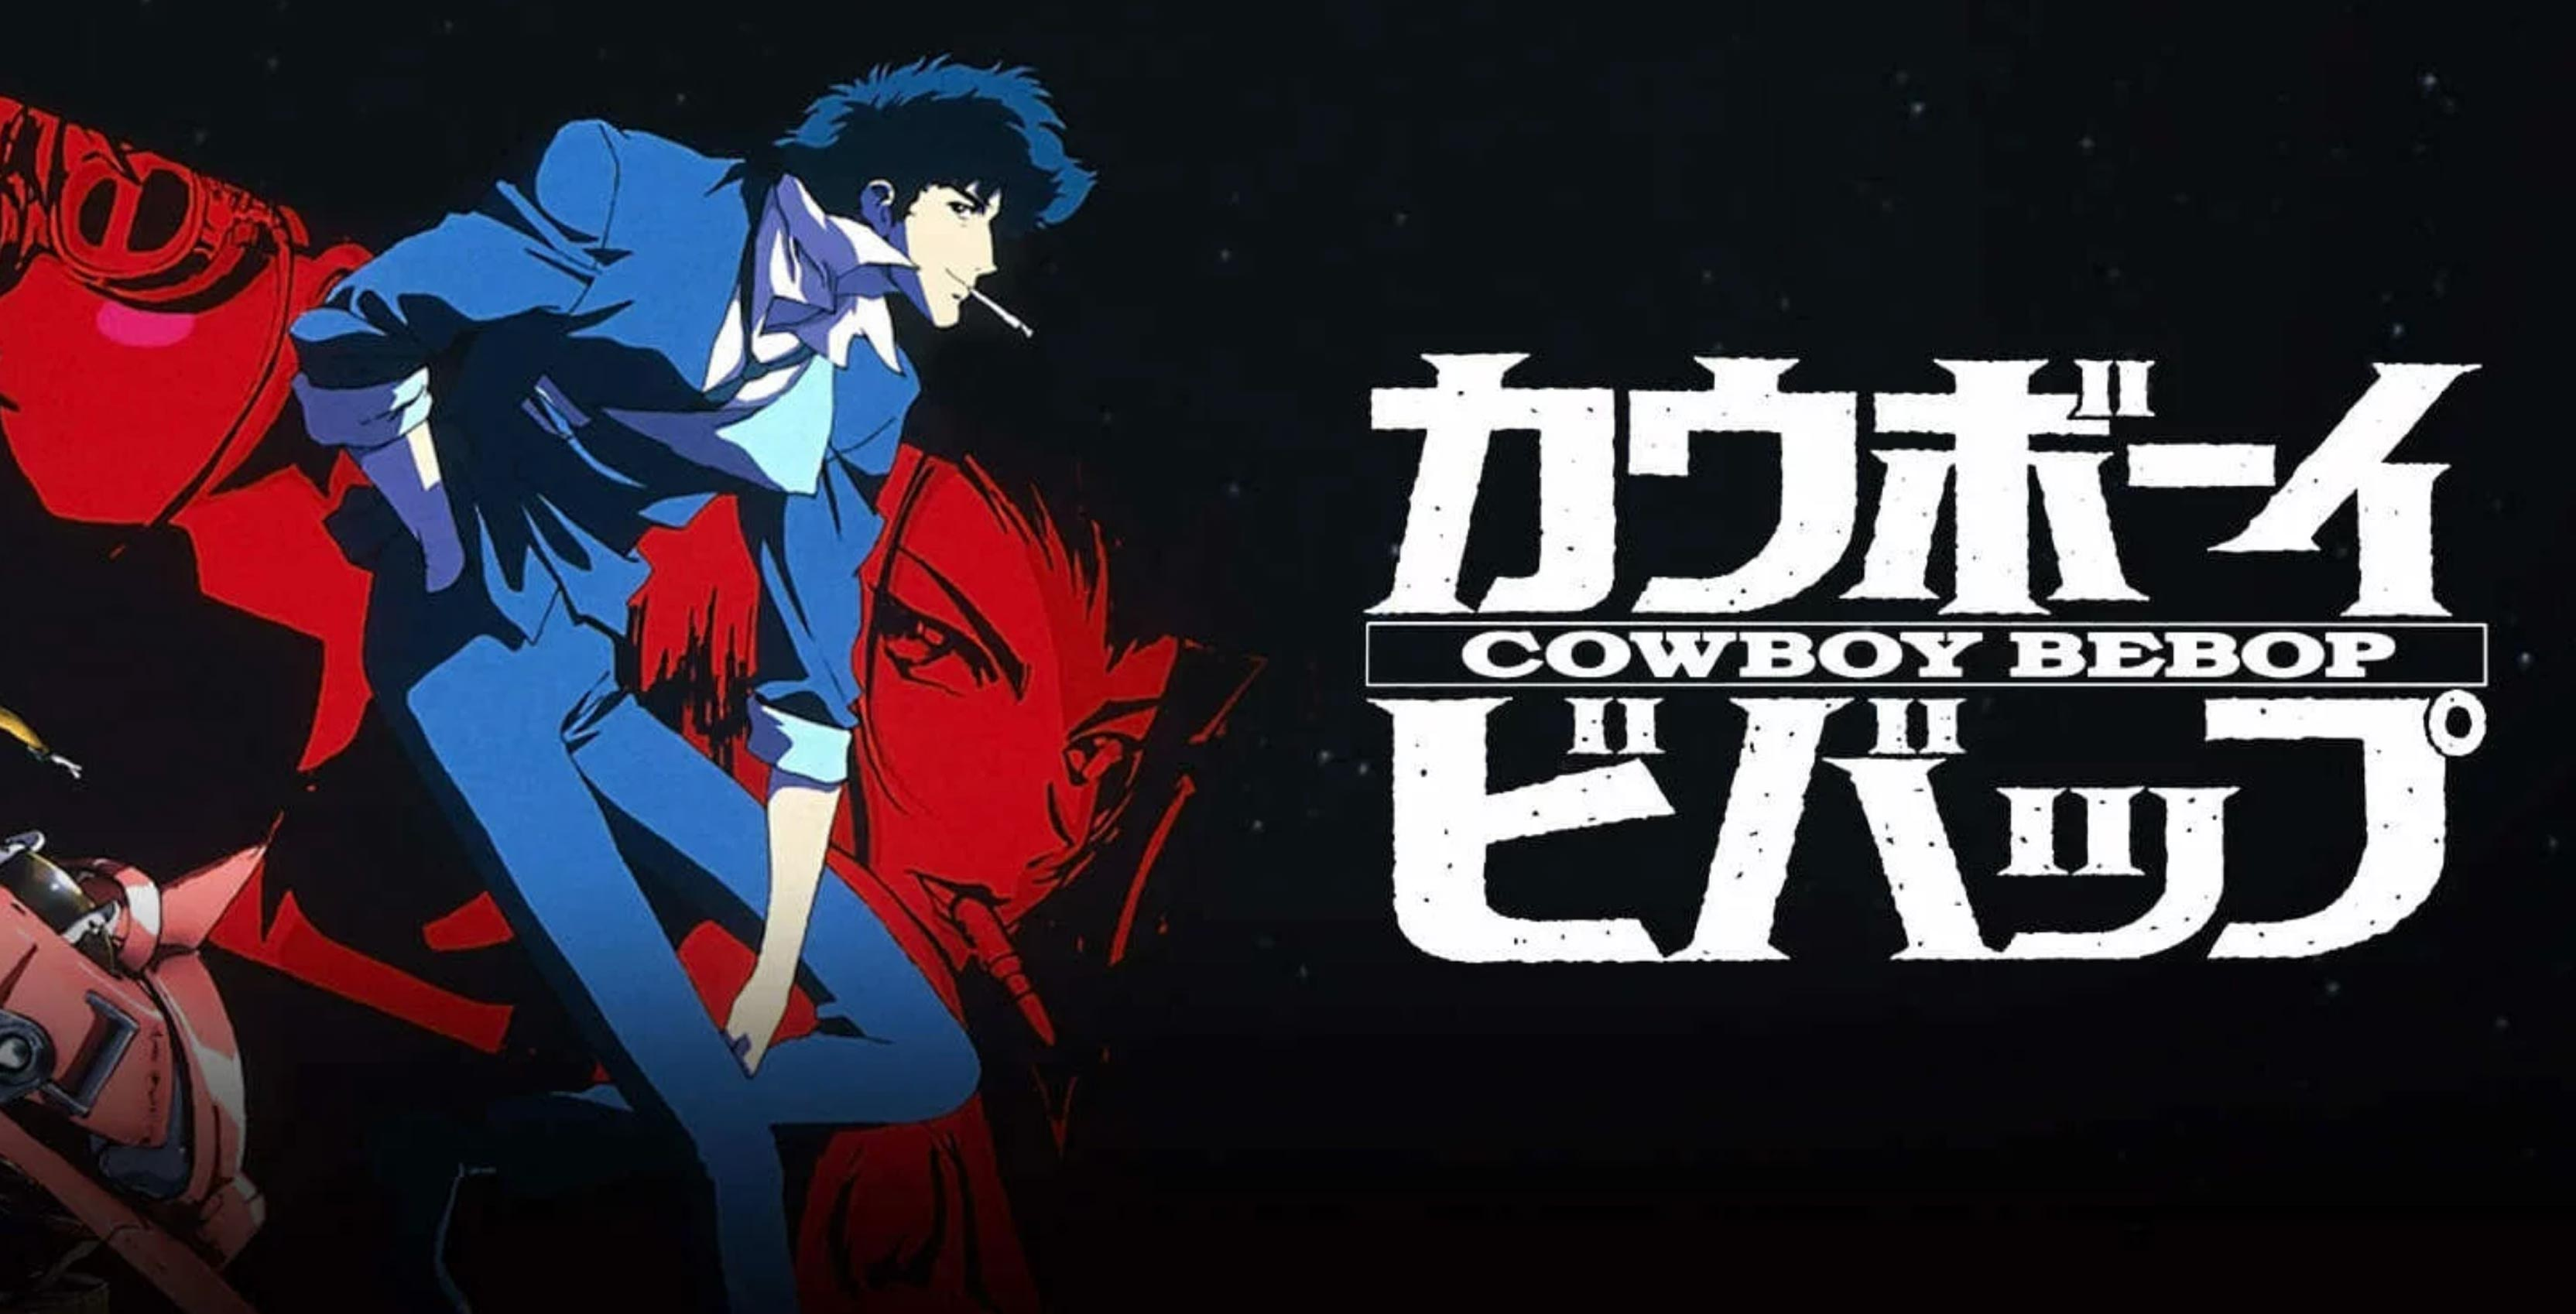 Netflix is turning Cowboy Bebop into a live action series